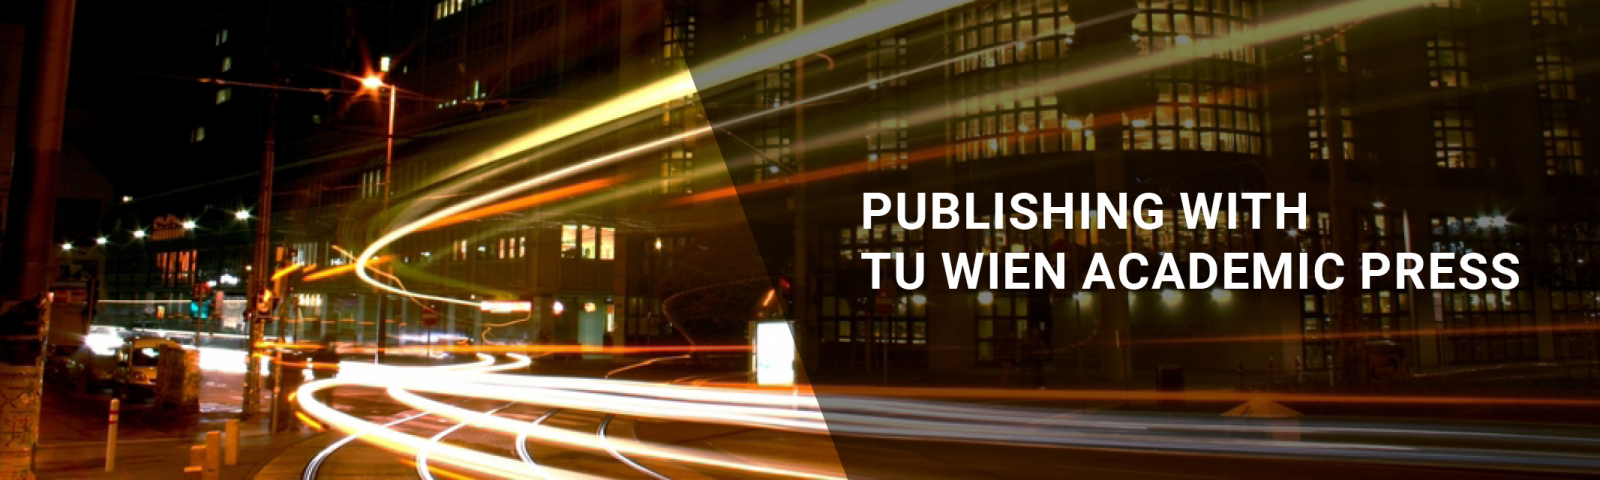 "The lights of a fast moving vehicle and the writing ""Publishing with TU Wien Academic Press"""